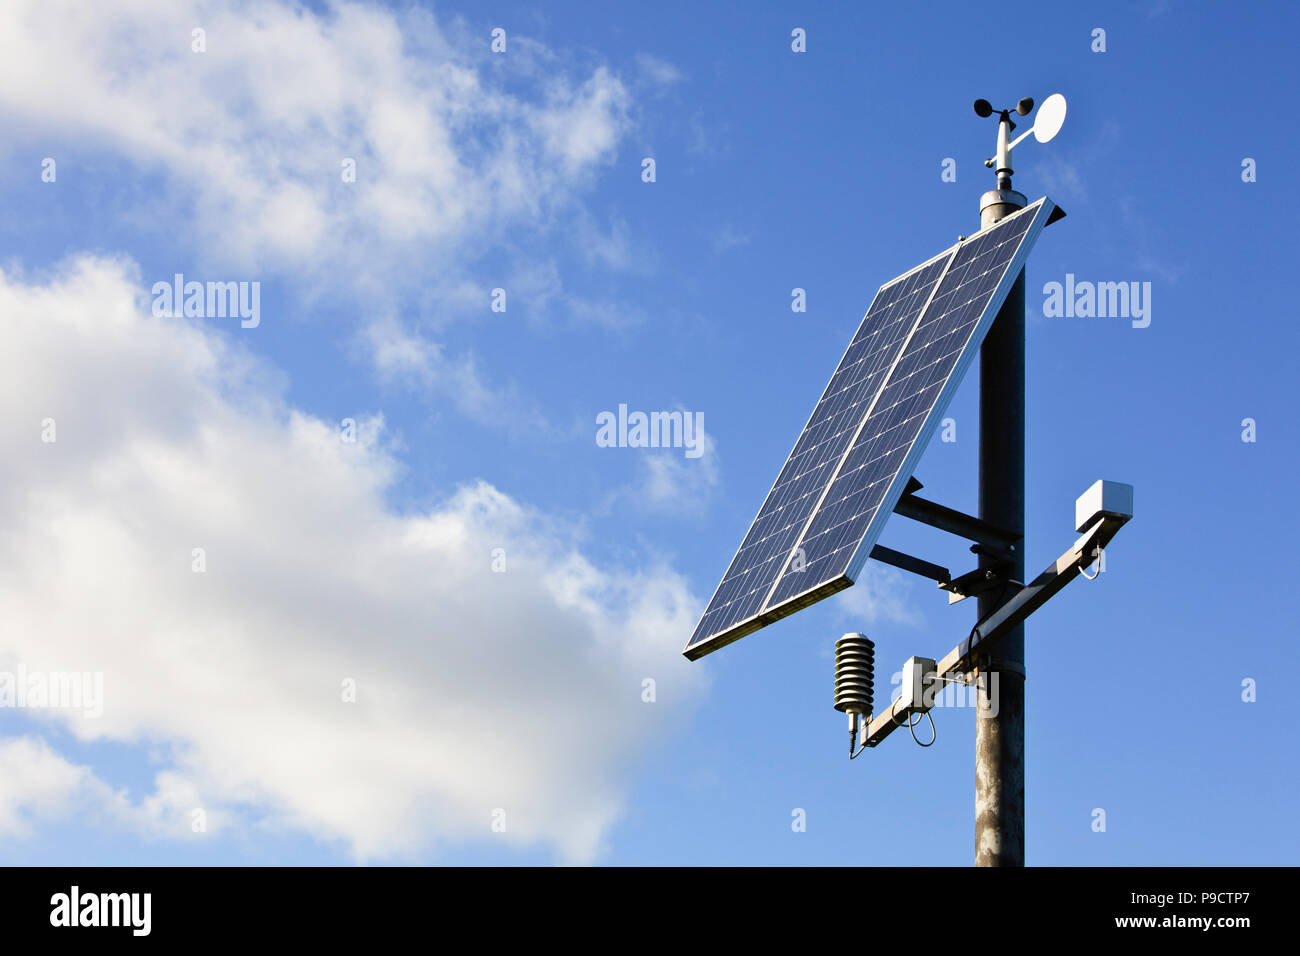 Solar powered weather and air pollution monitoring station, England UK - Stock Image